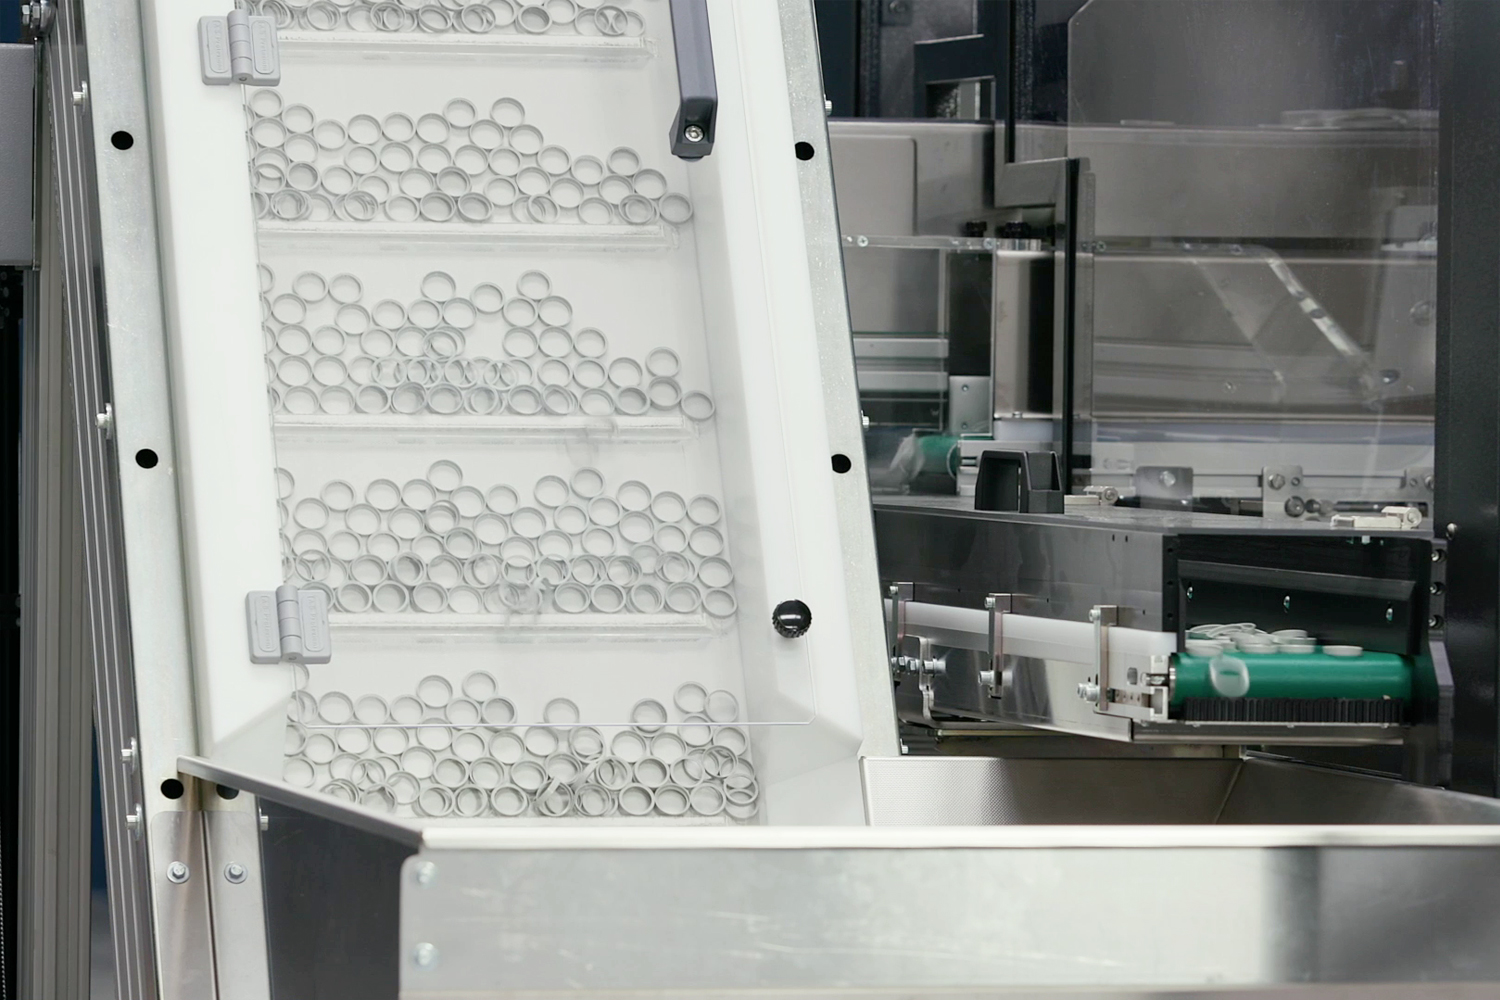 Sorting machine, sorting O rings for manufacturing, Doss visual solutions USA